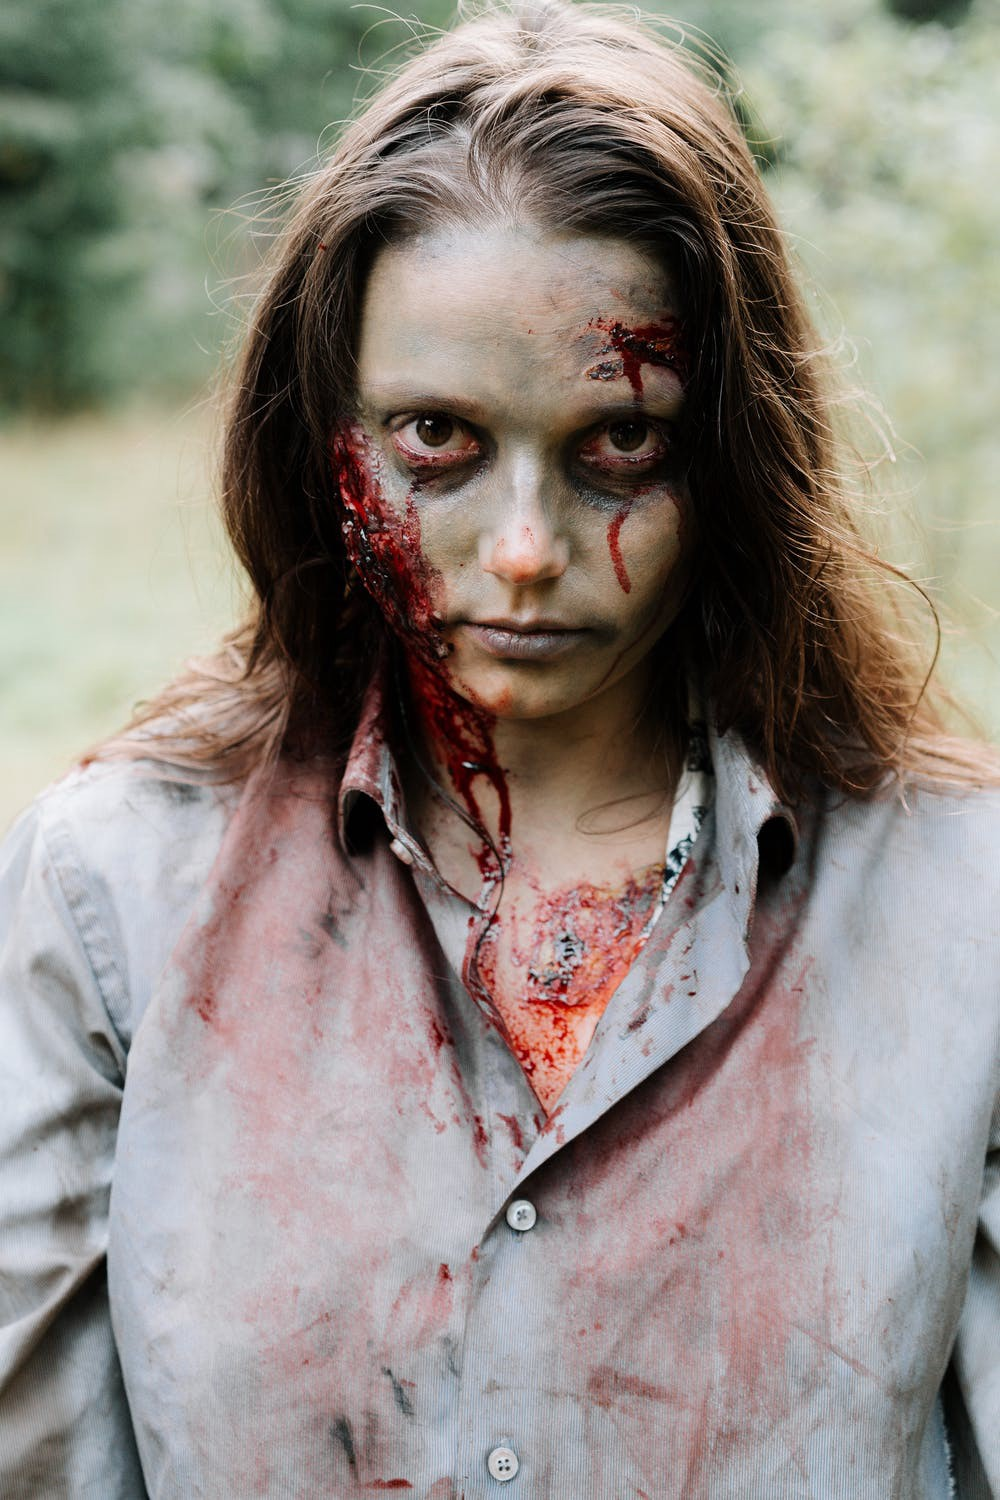 Picture of a female zombie representing zombie chains.